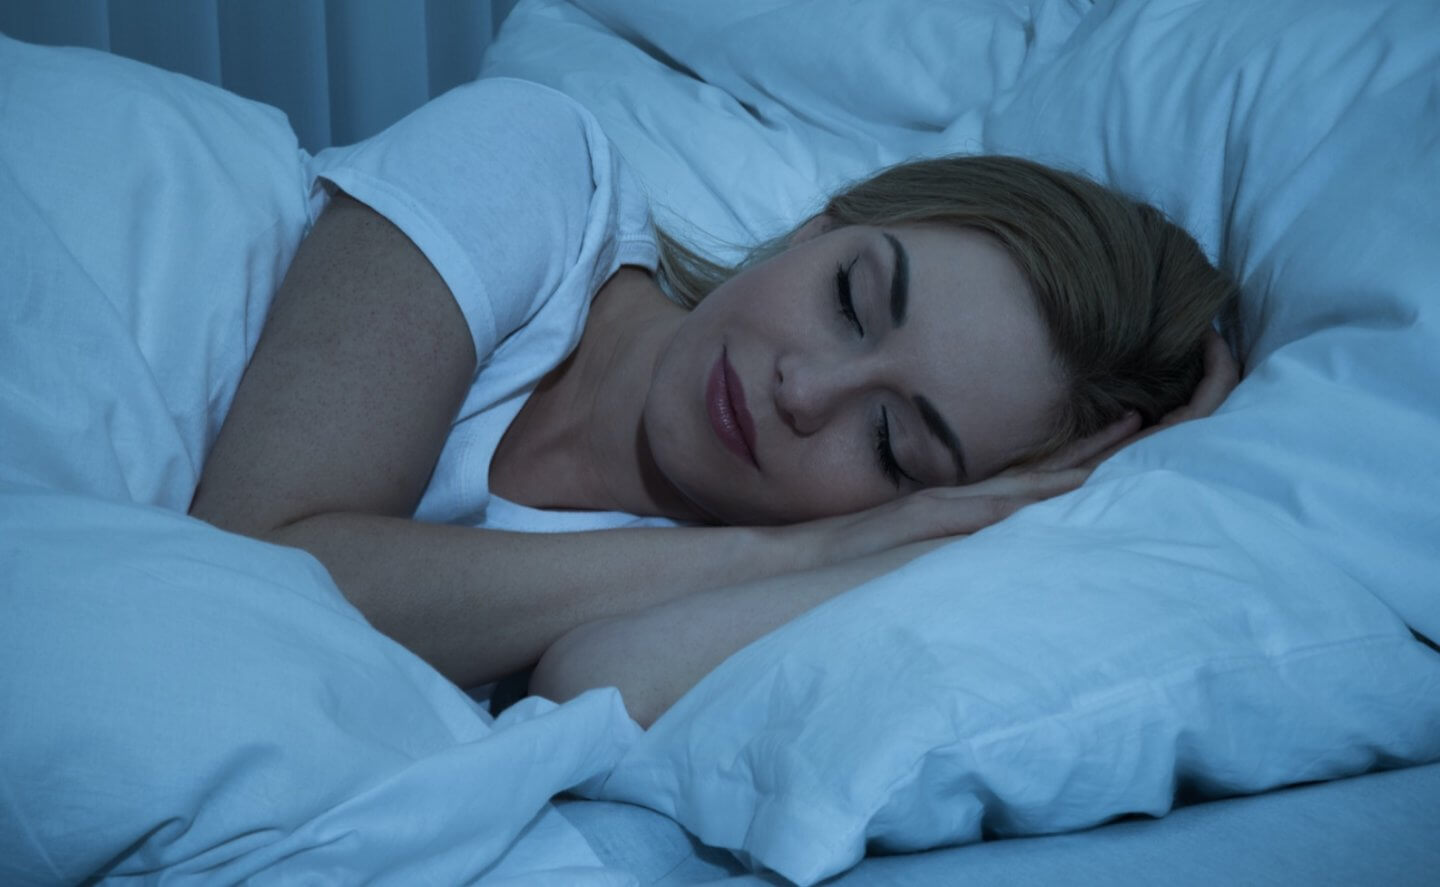 CBD helps with sleep and insomnia